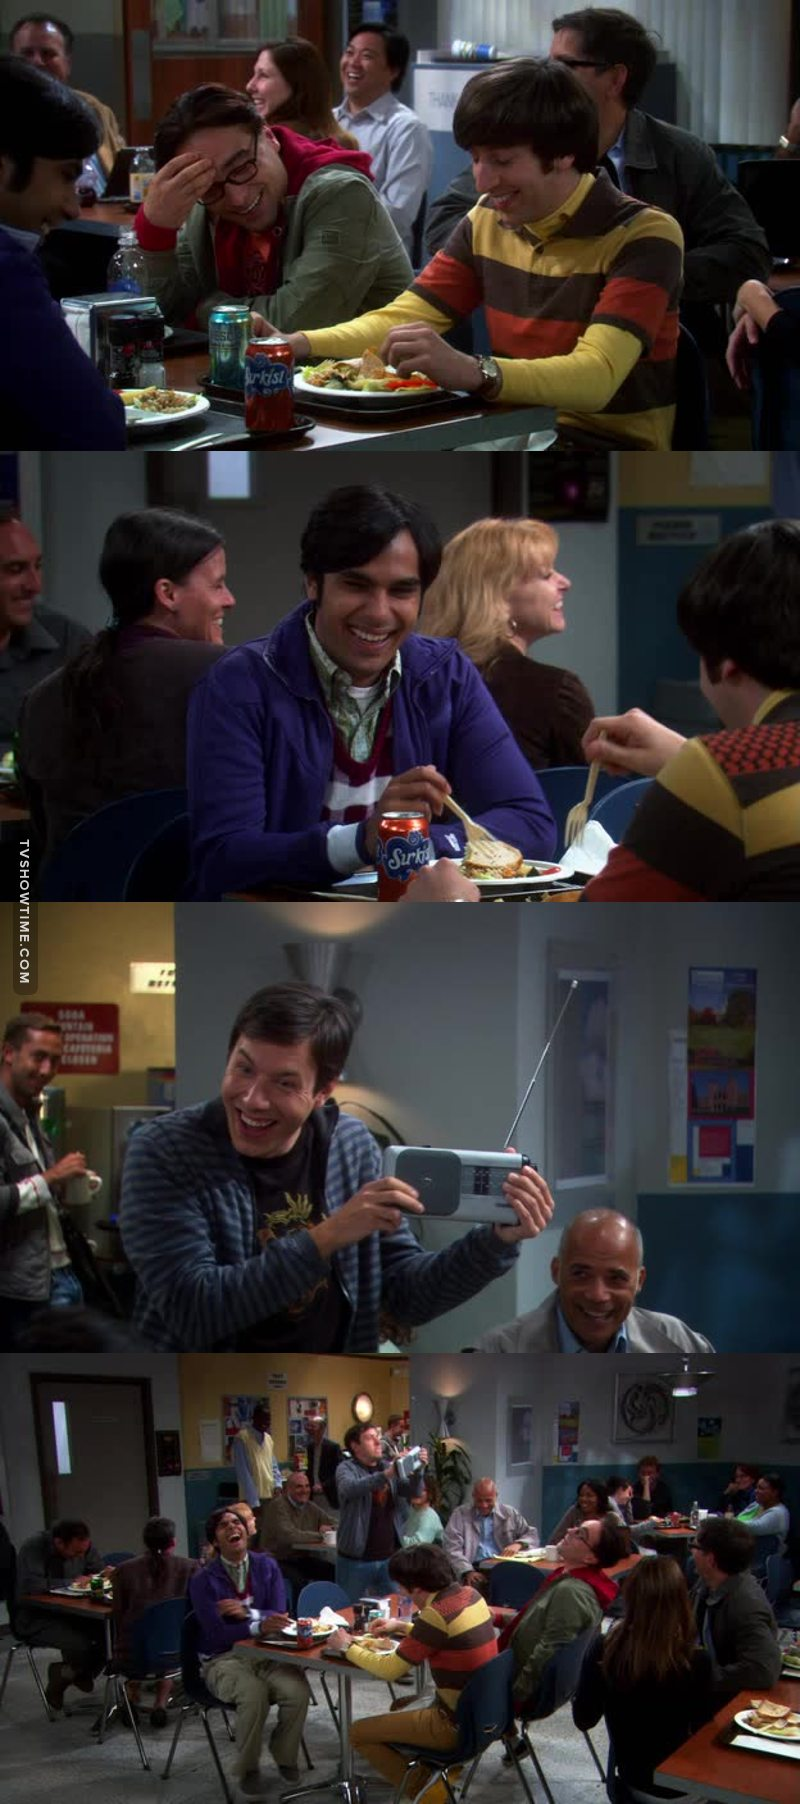 They are Sheldon's friends and they laugh at him/with Kripke?? That is so cruel